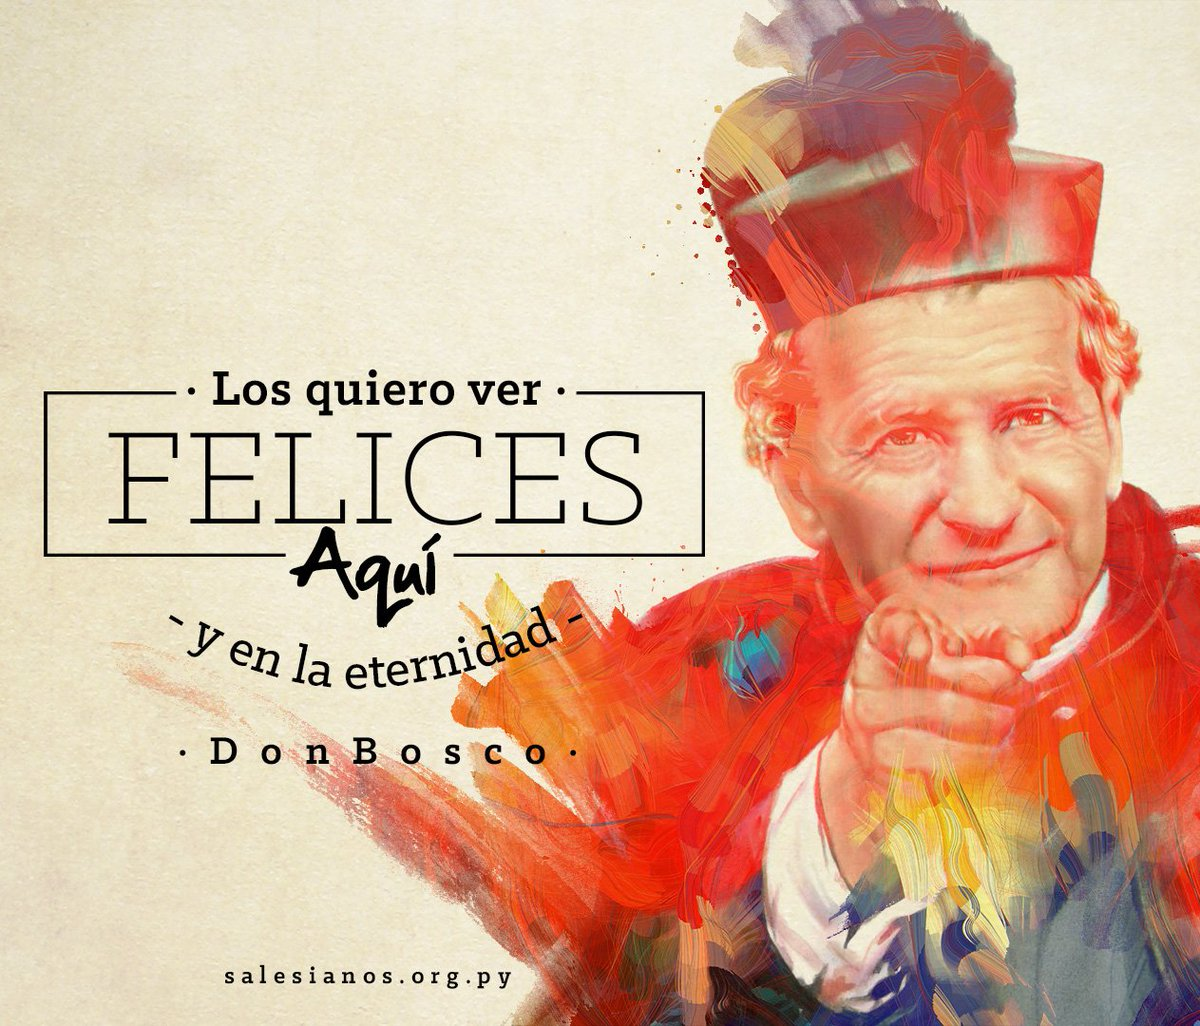 Frases De Don Bosco On Twitter Los Quiero Ver Felices